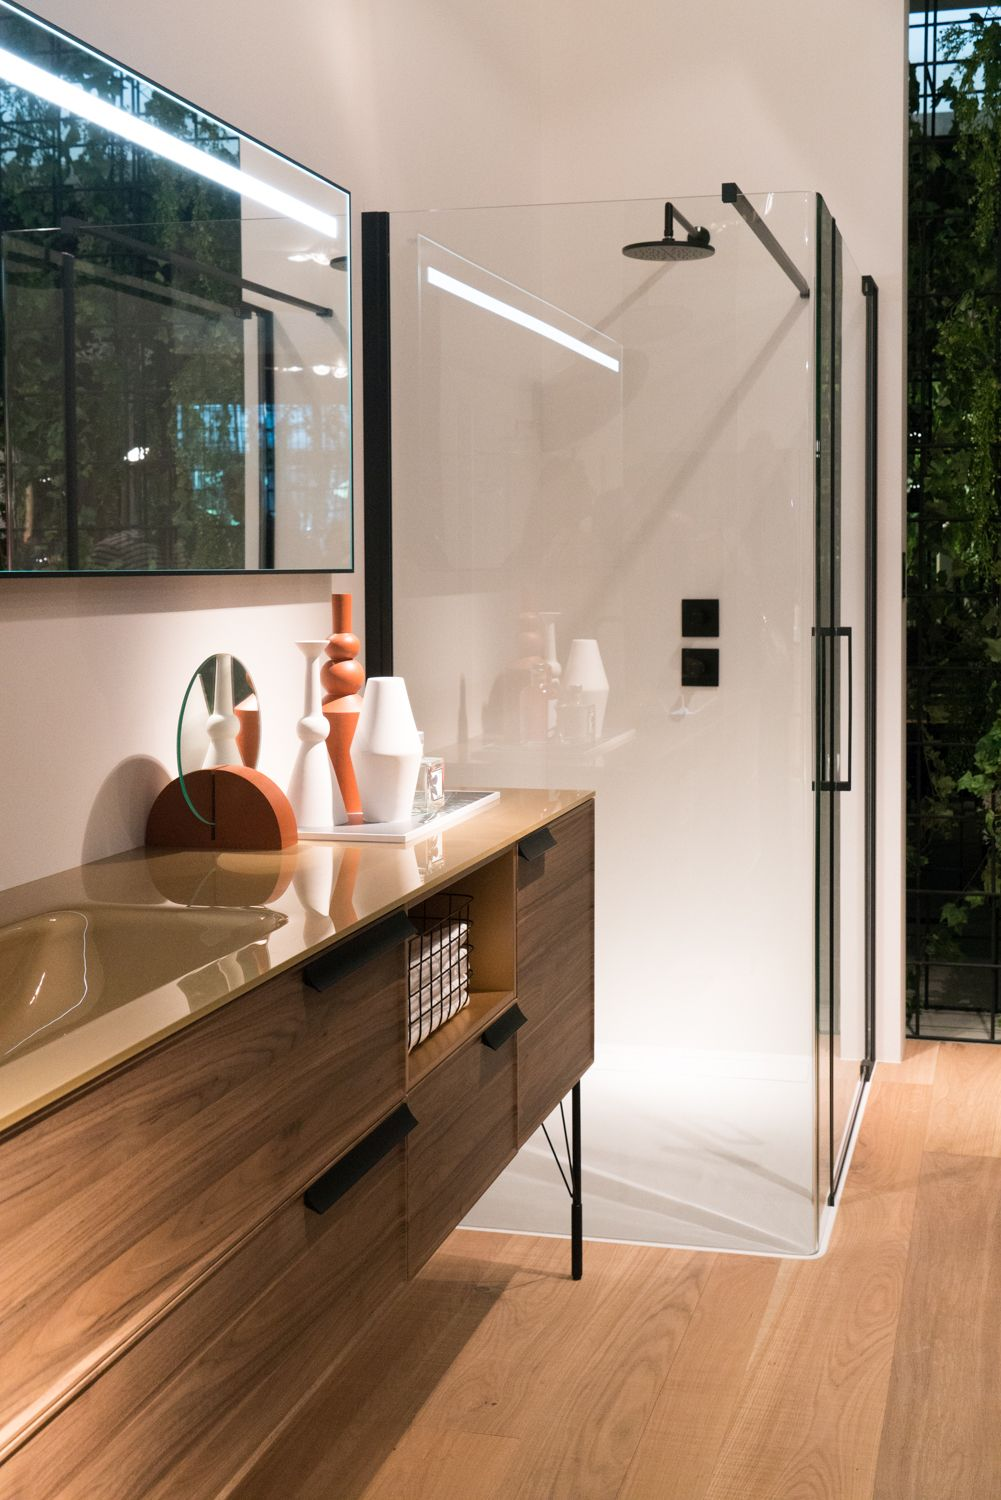 New bathroom designs make it easy to have a spa-like experience at home.